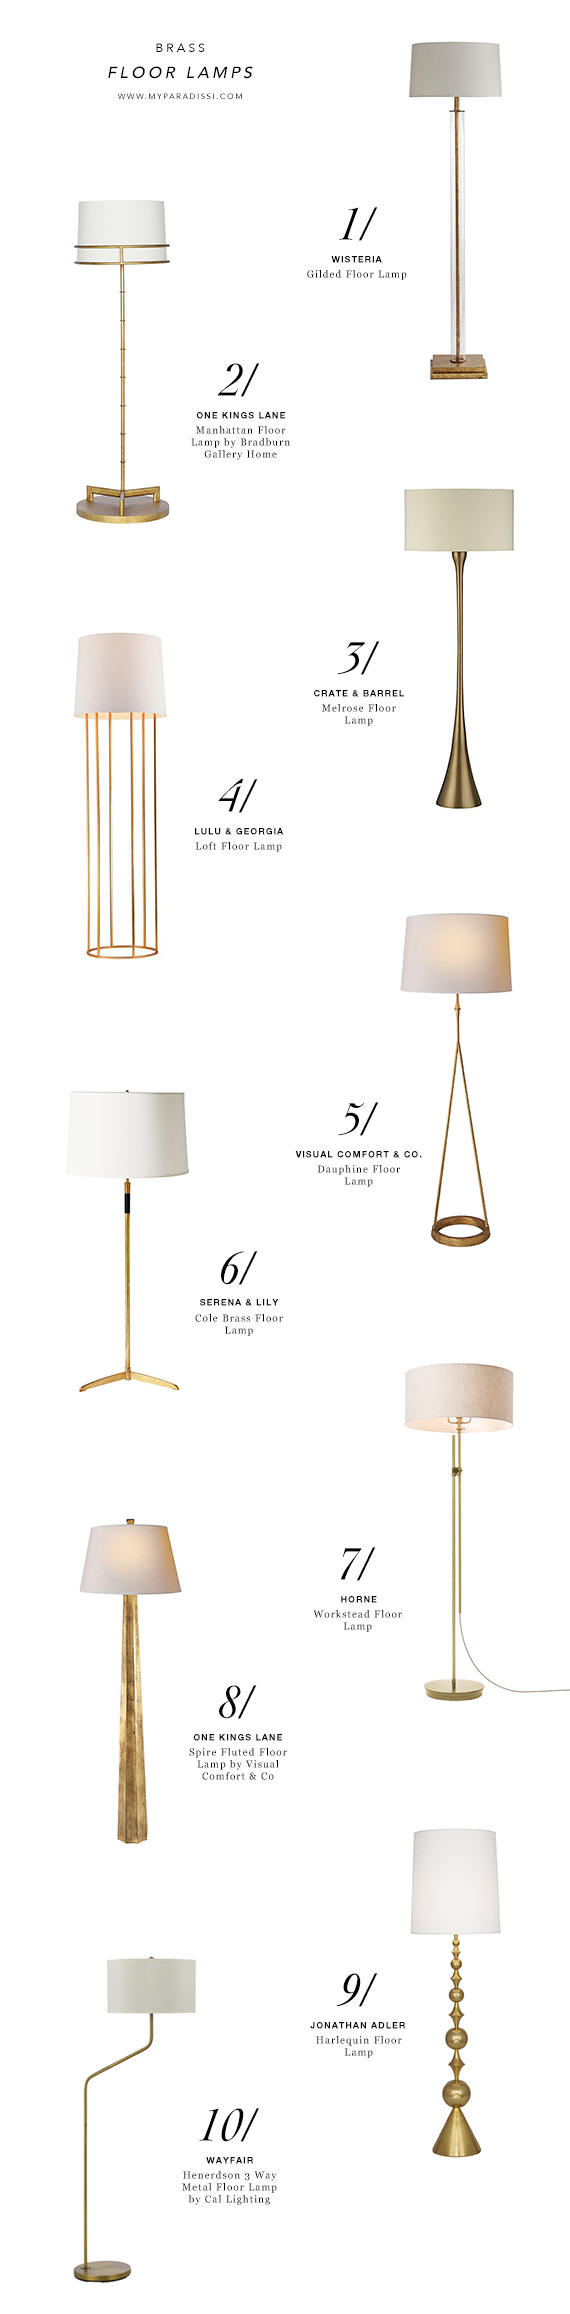 10 BEST: Brass floor lamps | My Paradissi